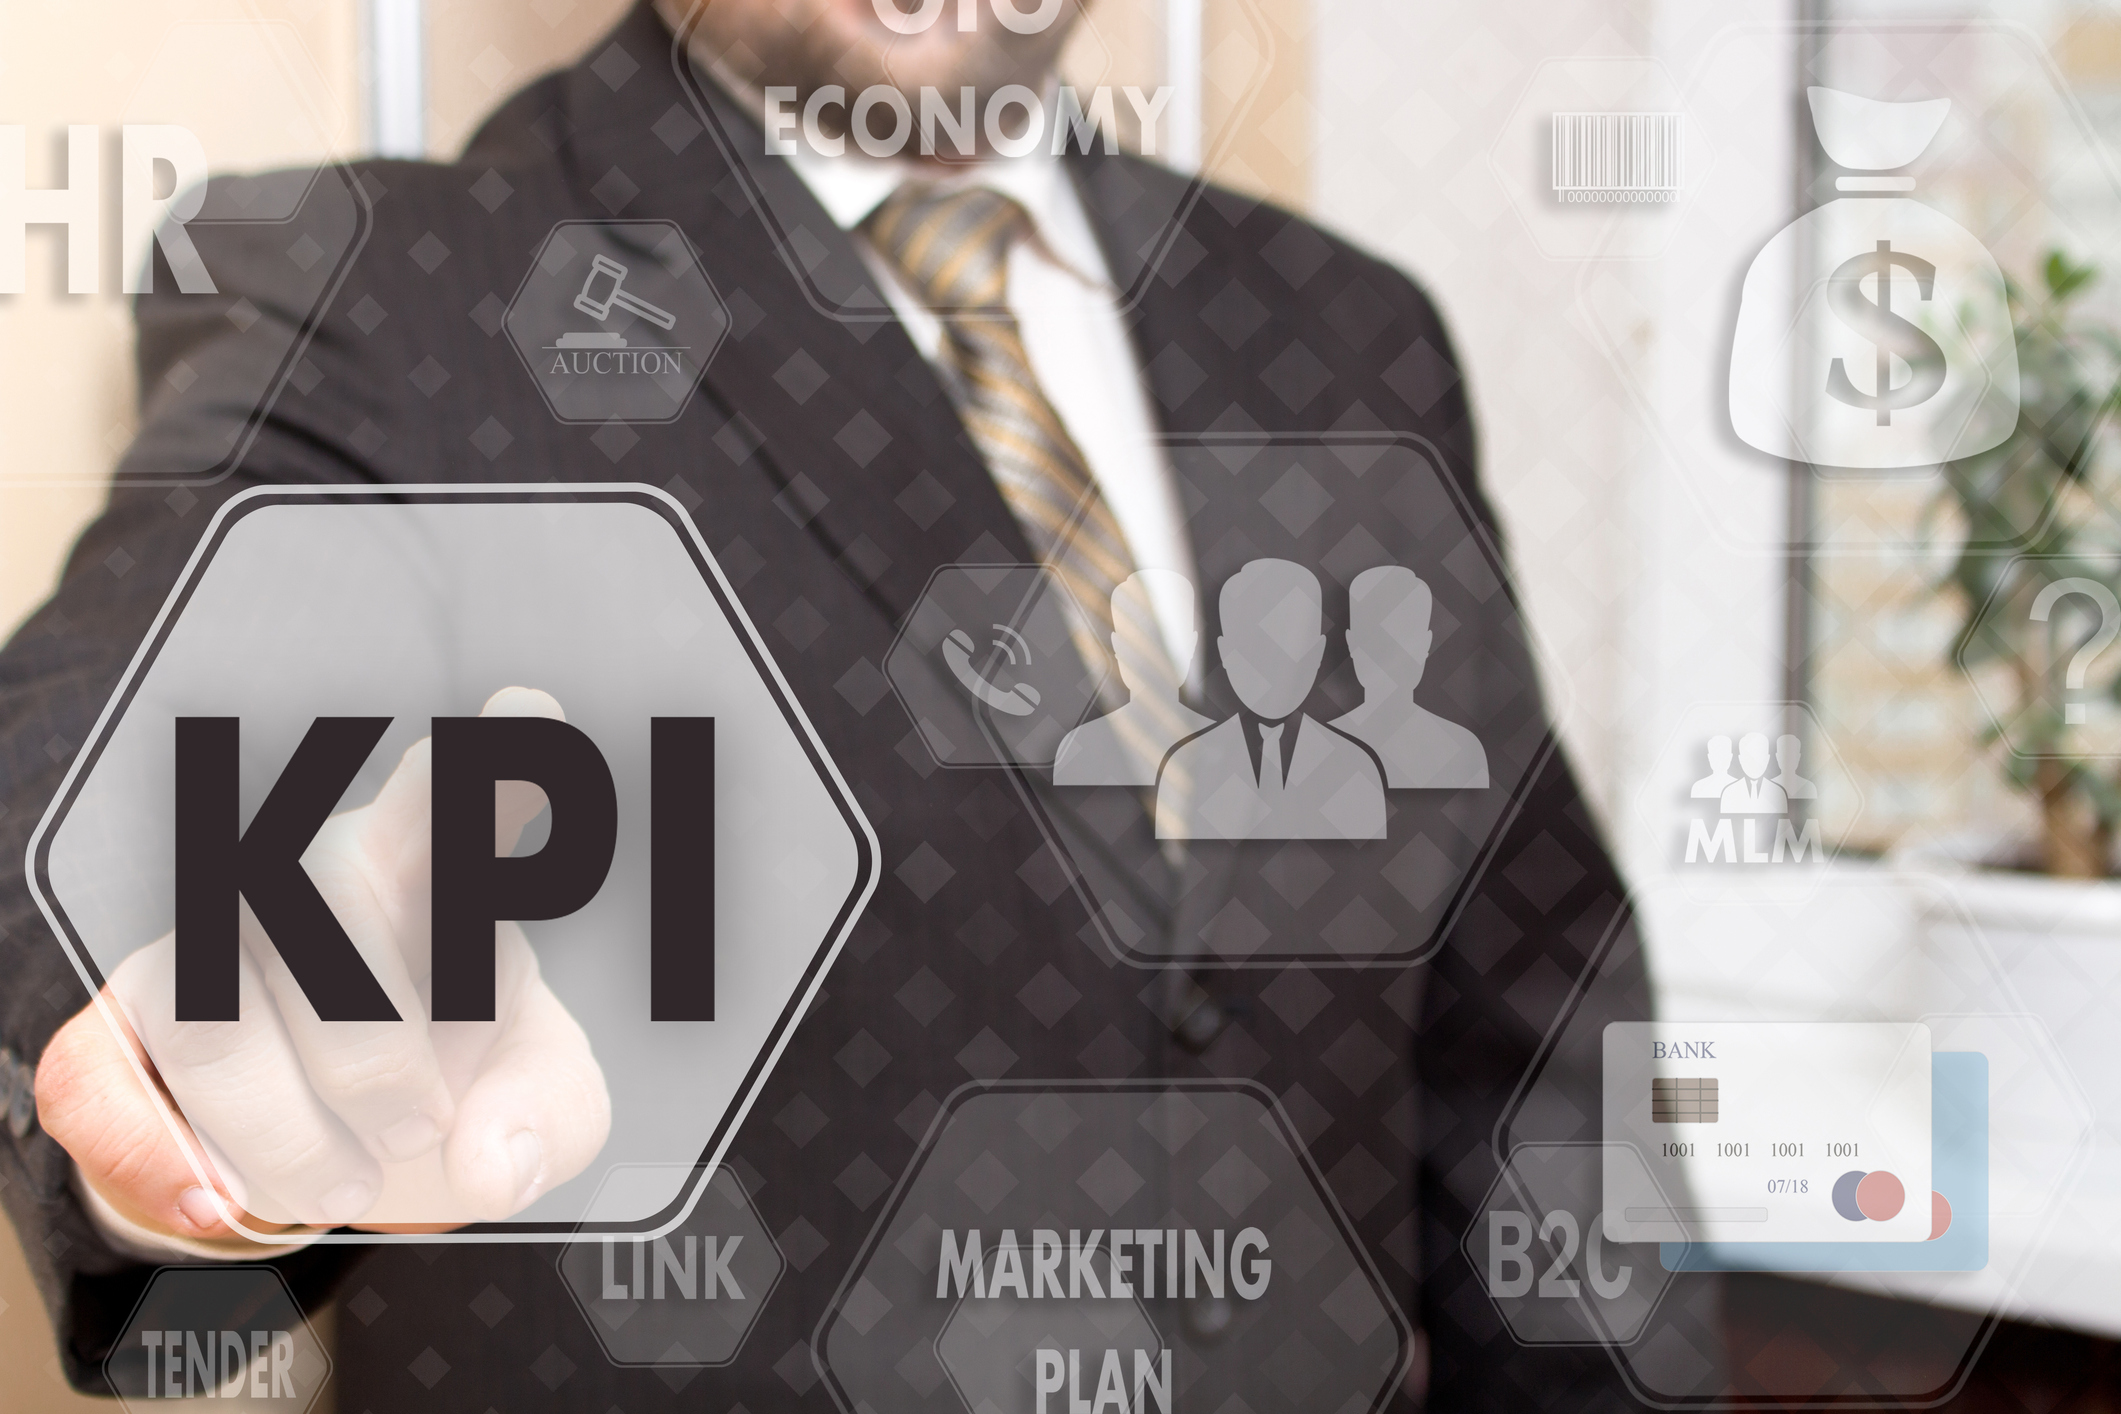 The businessman chooses the KPI, Key Performance Indicator on a touch screen. Concept KPI